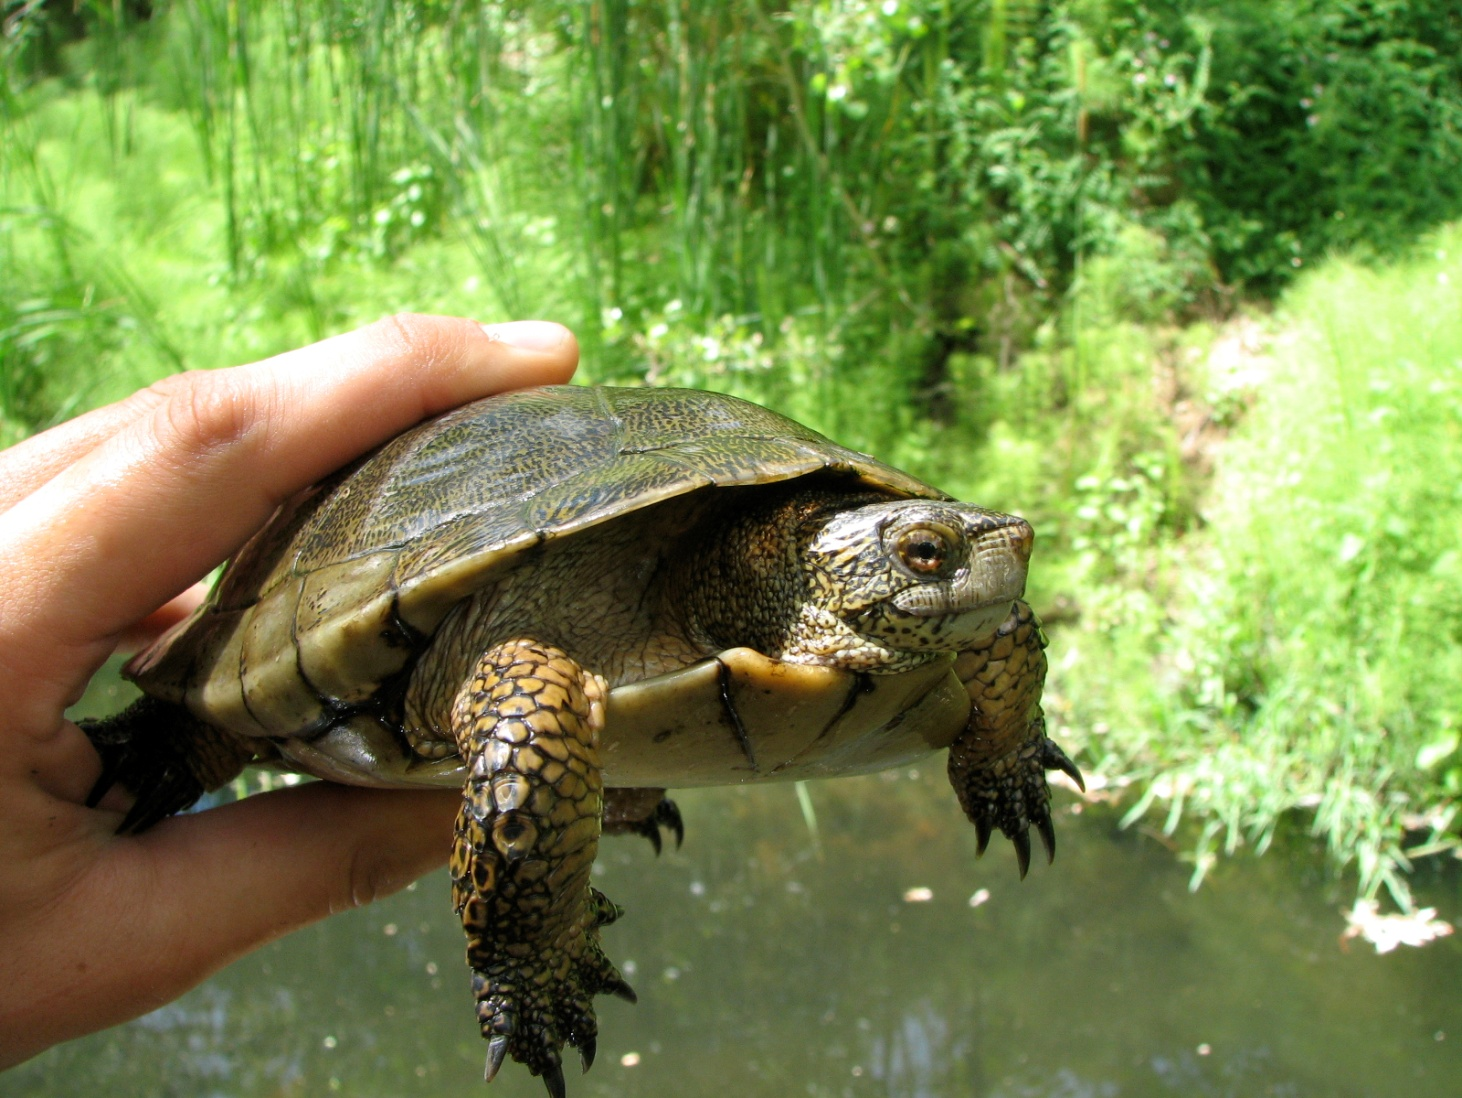 Western Pond Turtle showing the speckling pattern on the neck and flecks on the shell.